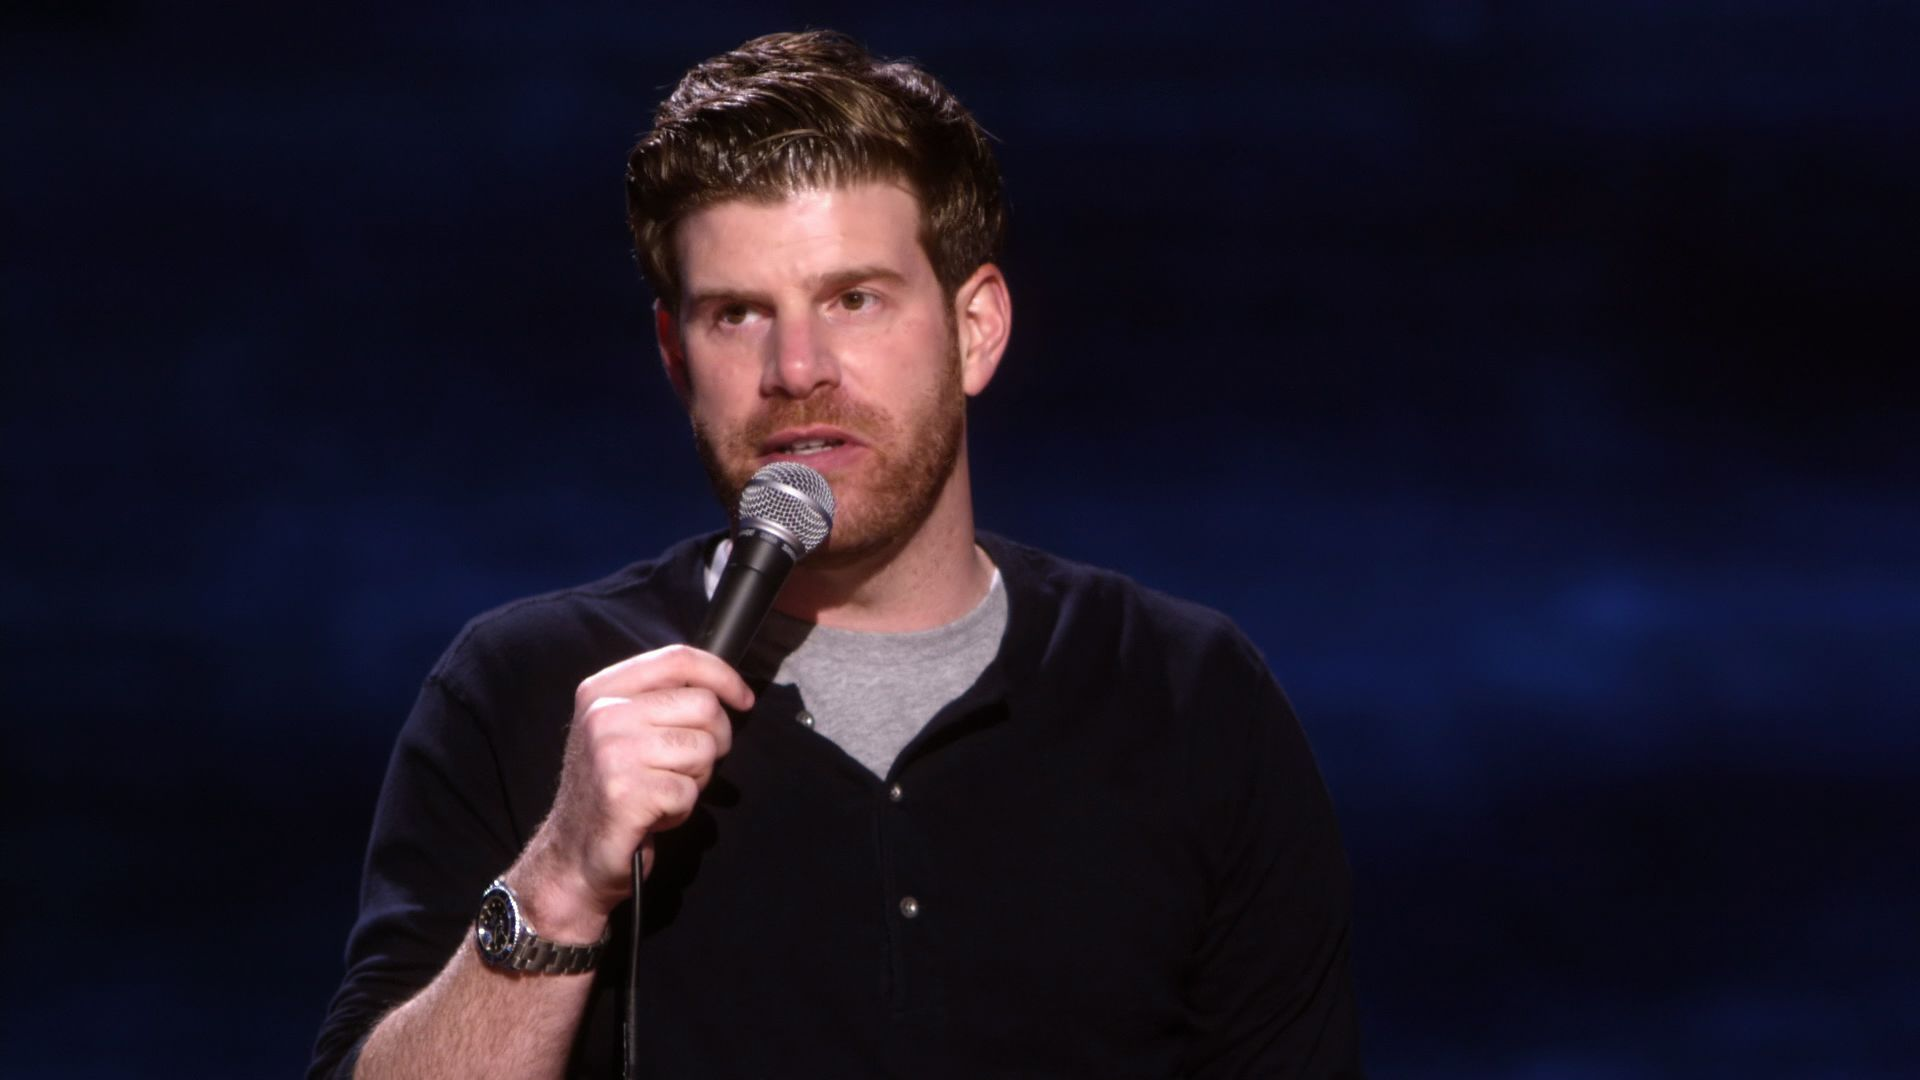 stephen rannazzisi familystephen rannazzisi wife, stephen rannazzisi stand up, stephen rannazzisi roast, stephen rannazzisi height, stephen rannazzisi podcast, stephen rannazzisi david boreanaz, stephen rannazzisi stand up full, stephen rannazzisi tour, stephen rannazzisi imdb, stephen rannazzisi comedy, stephen rannazzisi net worth, stephen rannazzisi breaking dad, stephen rannazzisi the league, stephen rannazzisi youtube, stephen rannazzisi twitter, stephen rannazzisi family, stephen rannazzisi new girl, stephen rannazzisi denver, stephen rannazzisi instagram, stephen rannazzisi wiki